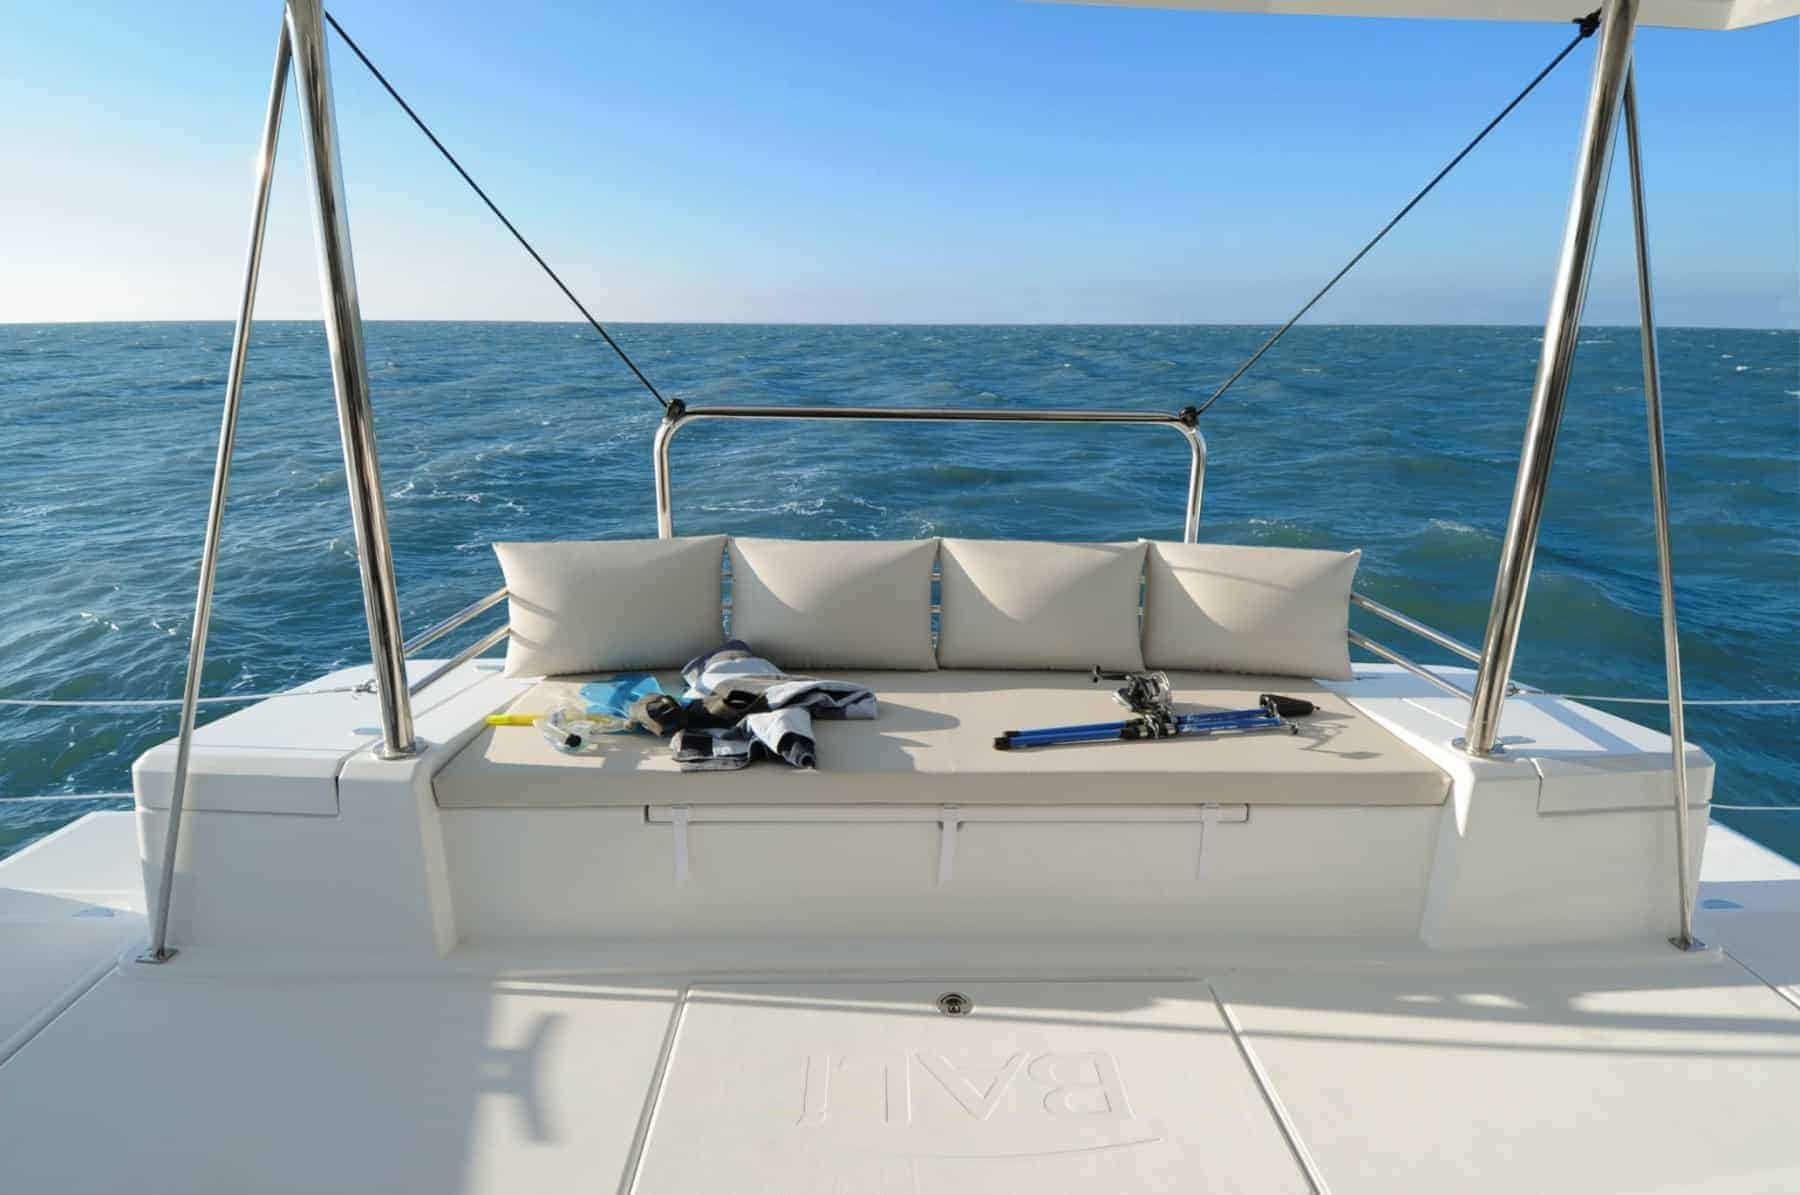 A beige couch on the Bali 4.1 catamaran's cockpit with diving equipment on it